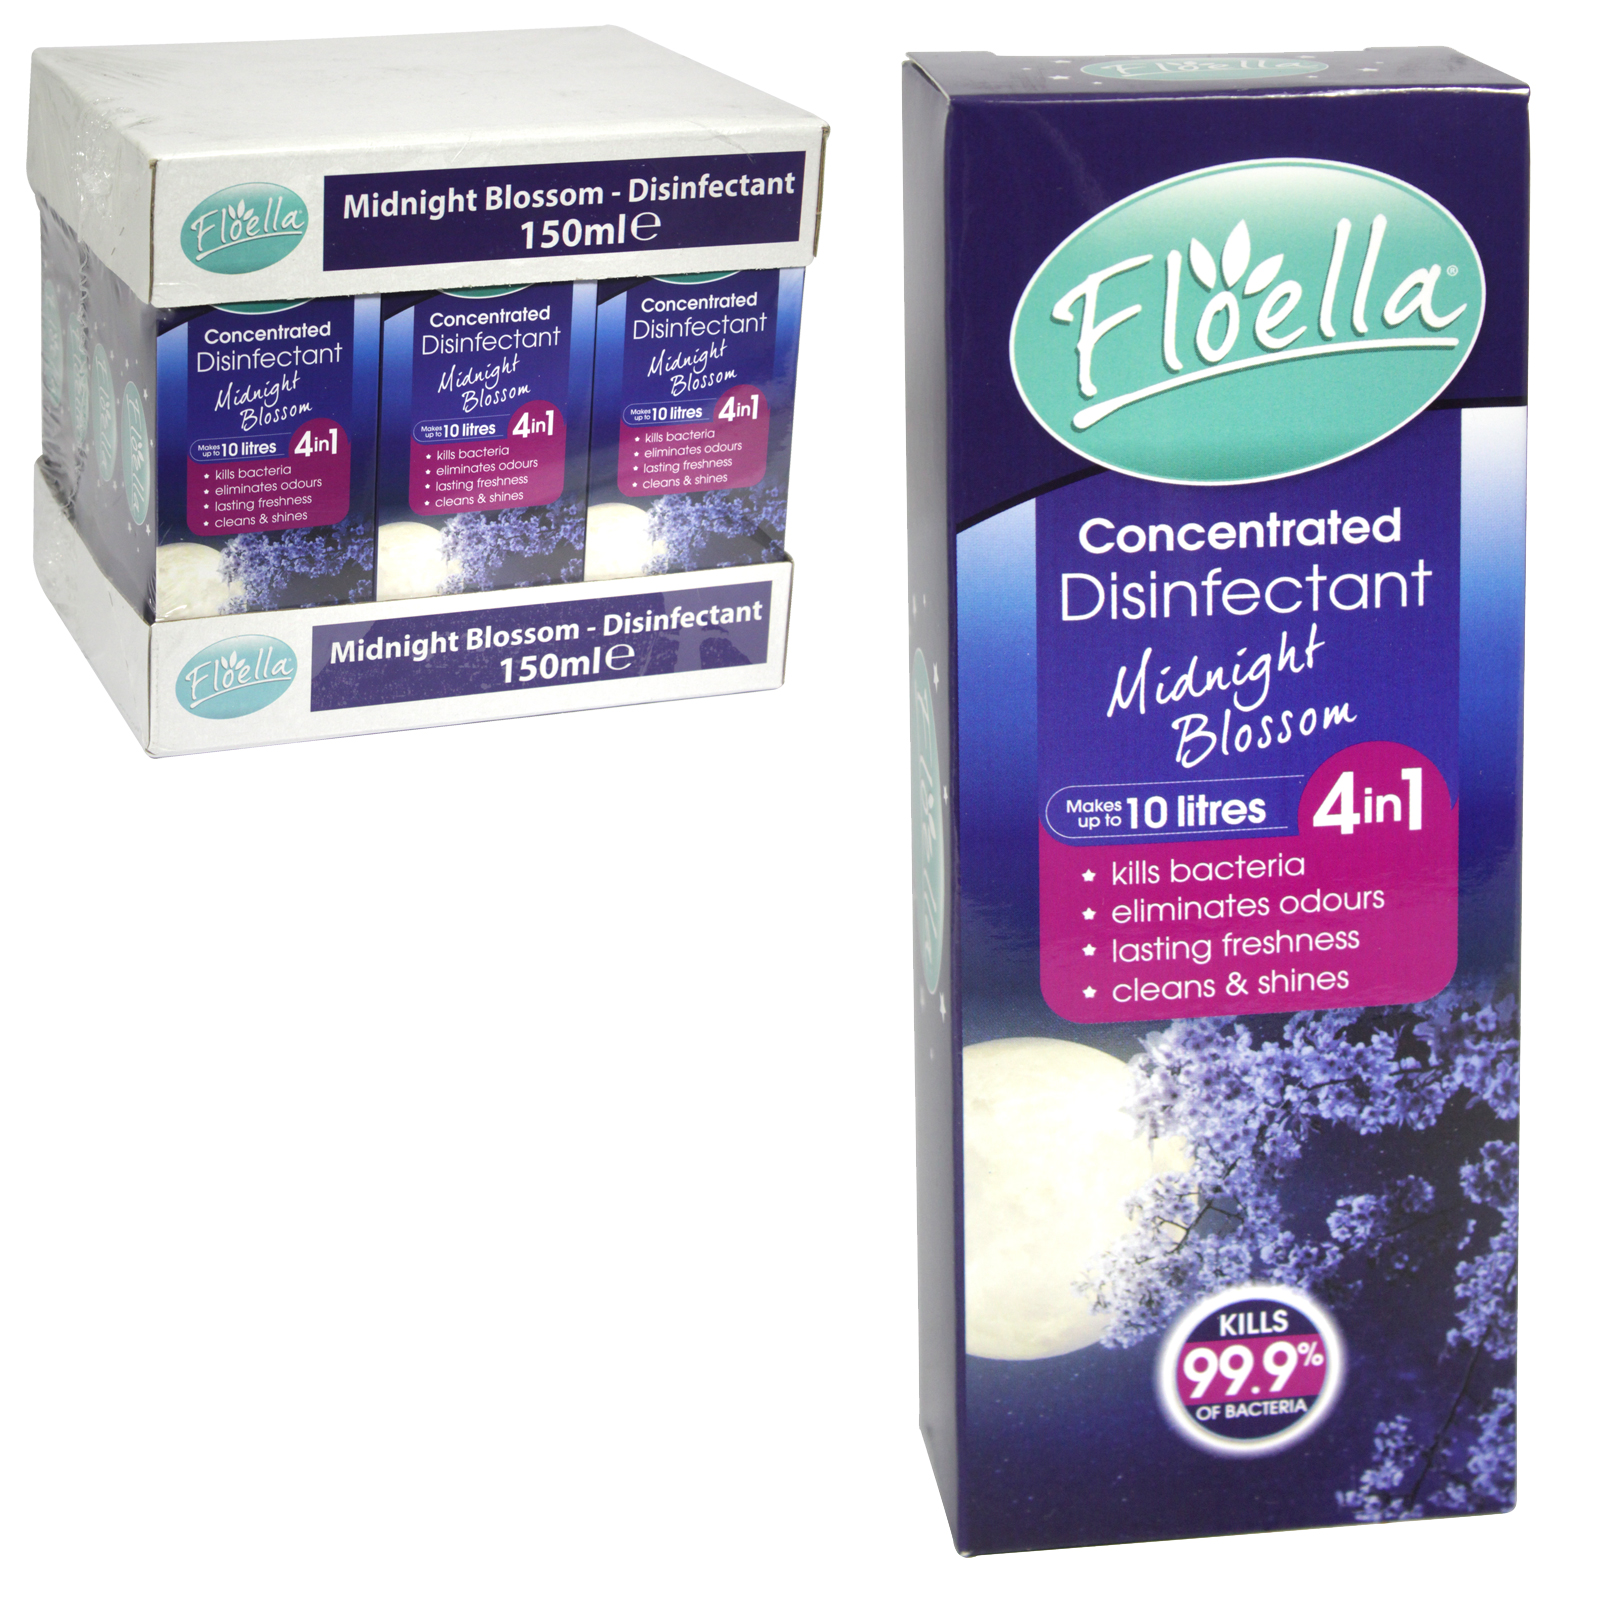 FLOELLA 4IN1 CONCENTRATE DISINFECTANT 150ML MAKES 10 LITRES MIDNIGHT BLOSSOM X12